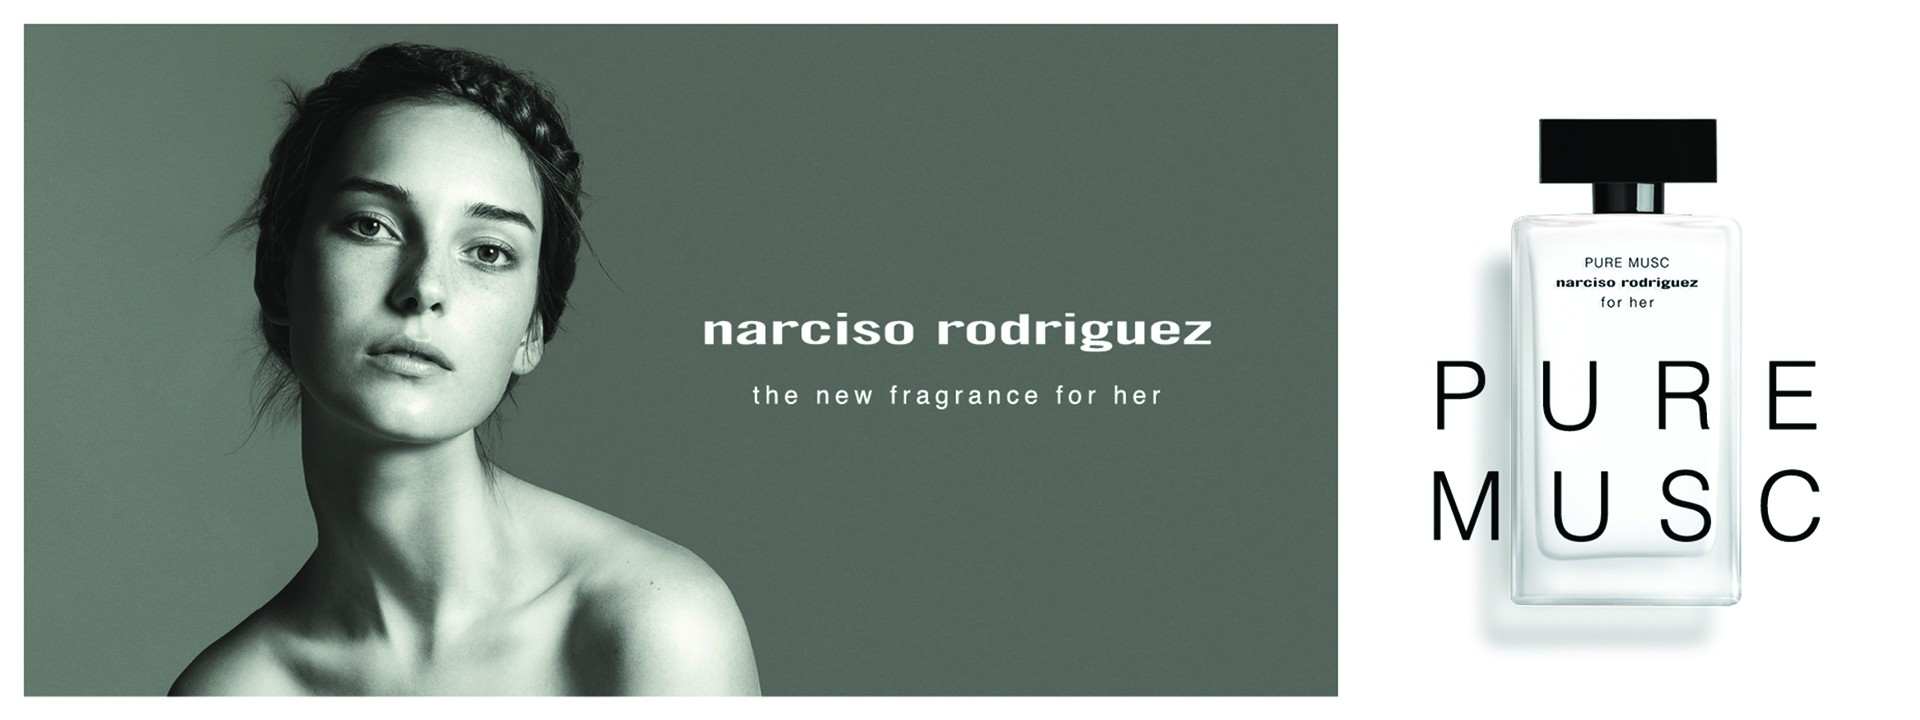 FOR HER PURE MUSC NARCISO RODRIGUEZ